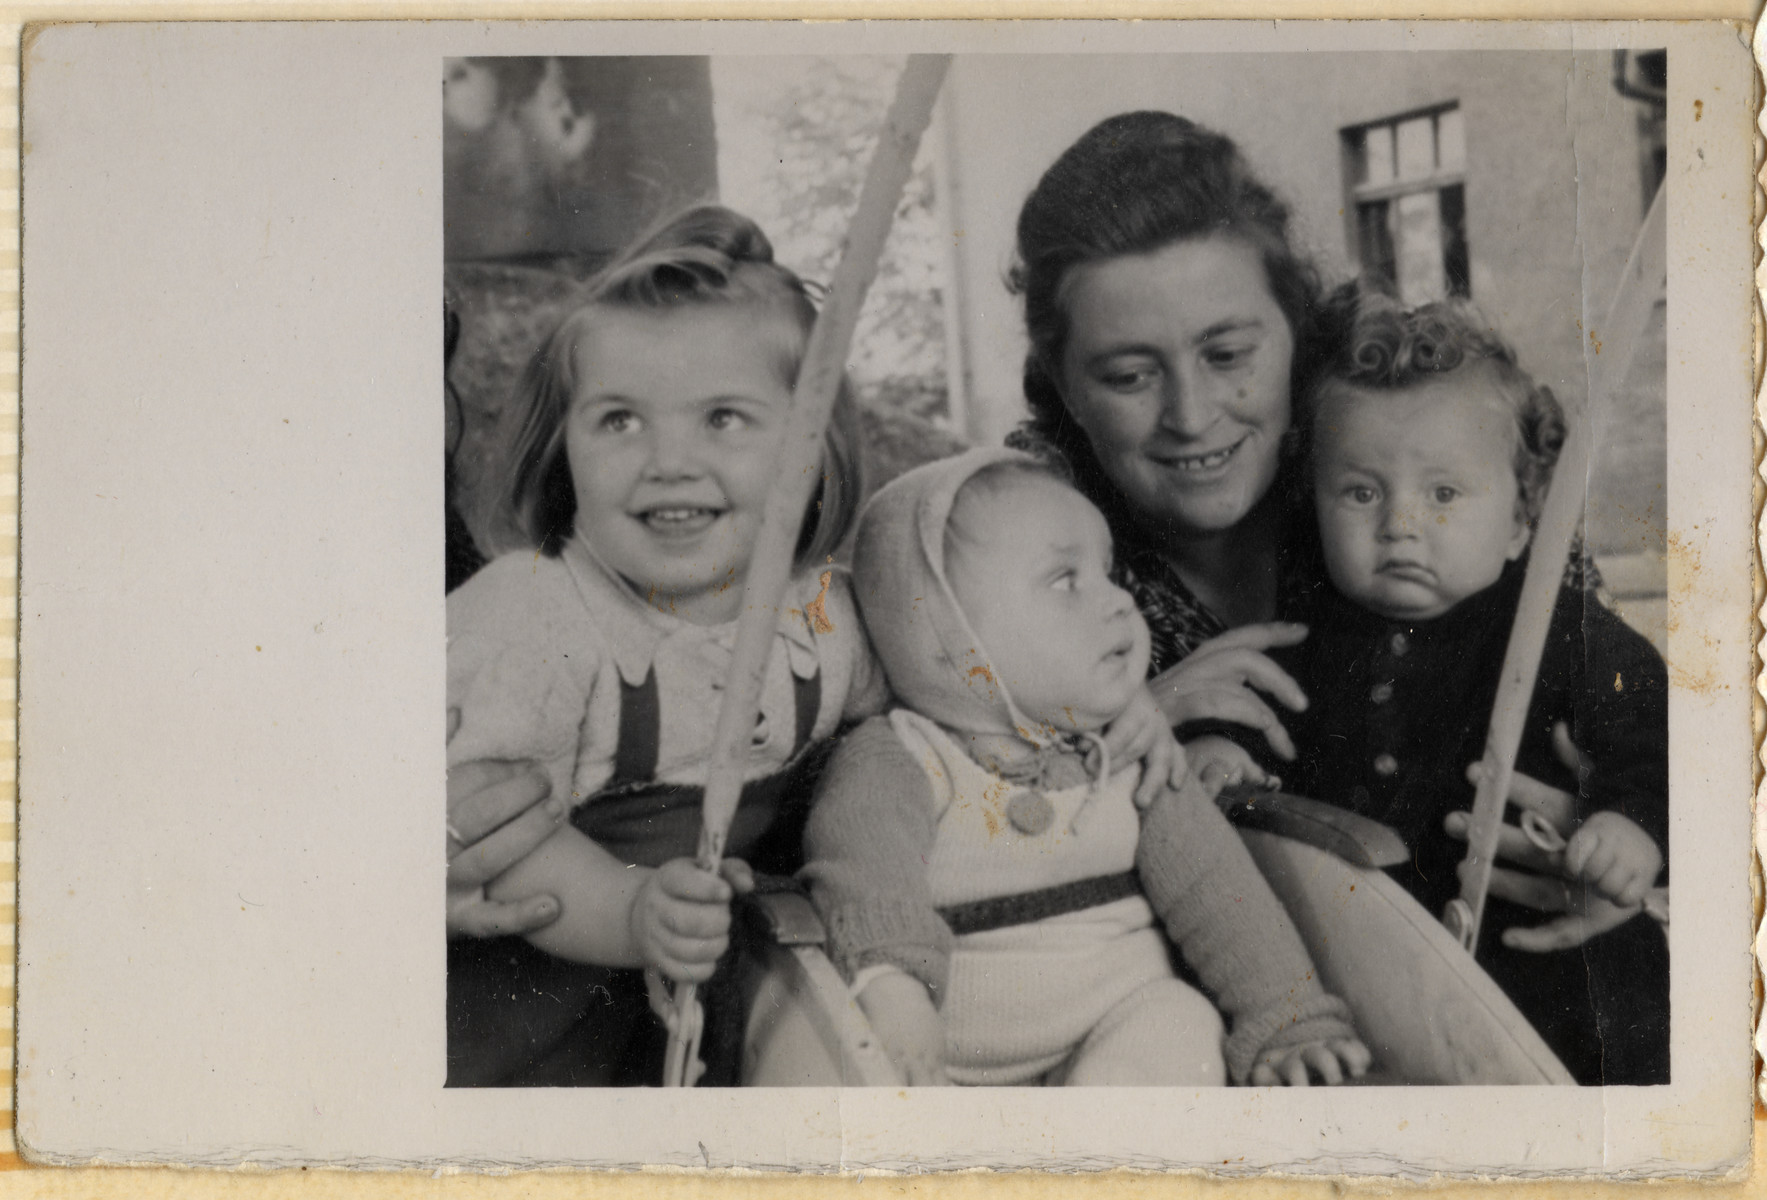 Dora Kohl poses with her two children Miriam and Sam and an unidentified baby in the Hofgeismar displaced persons camp.